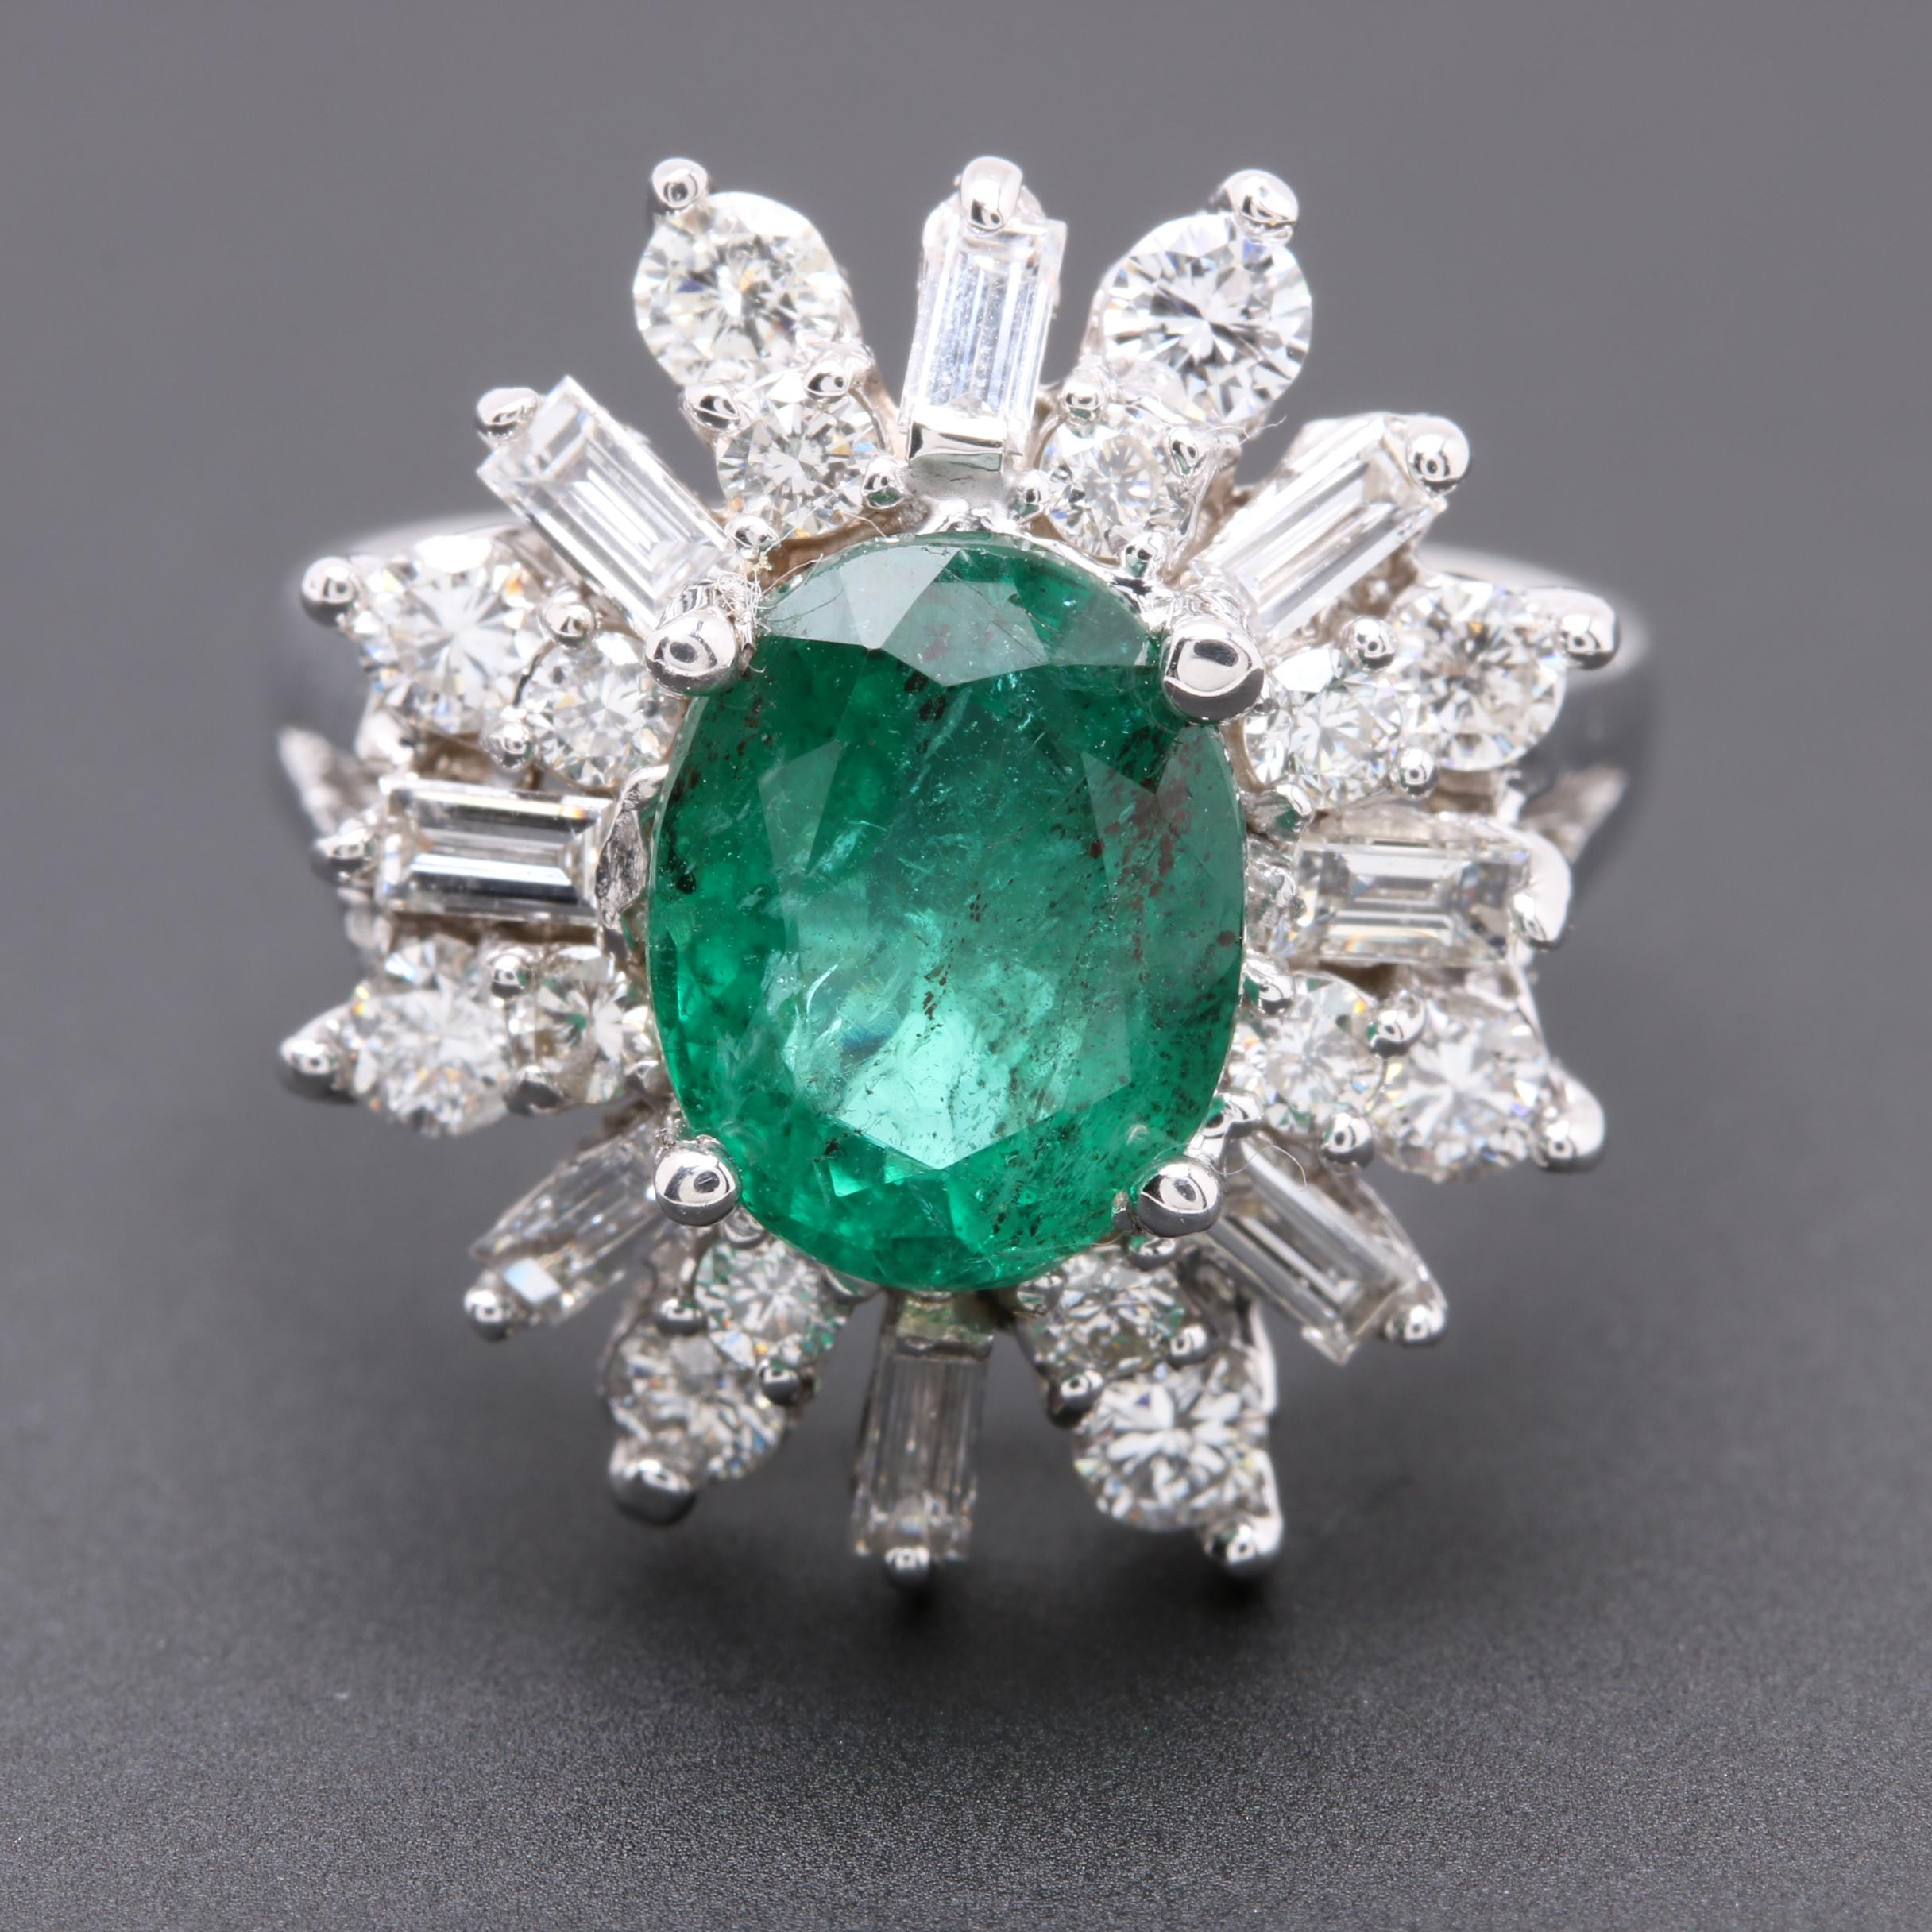 14K White Gold 2.44 CT Emerald and 1.72 CTW Diamond Ring